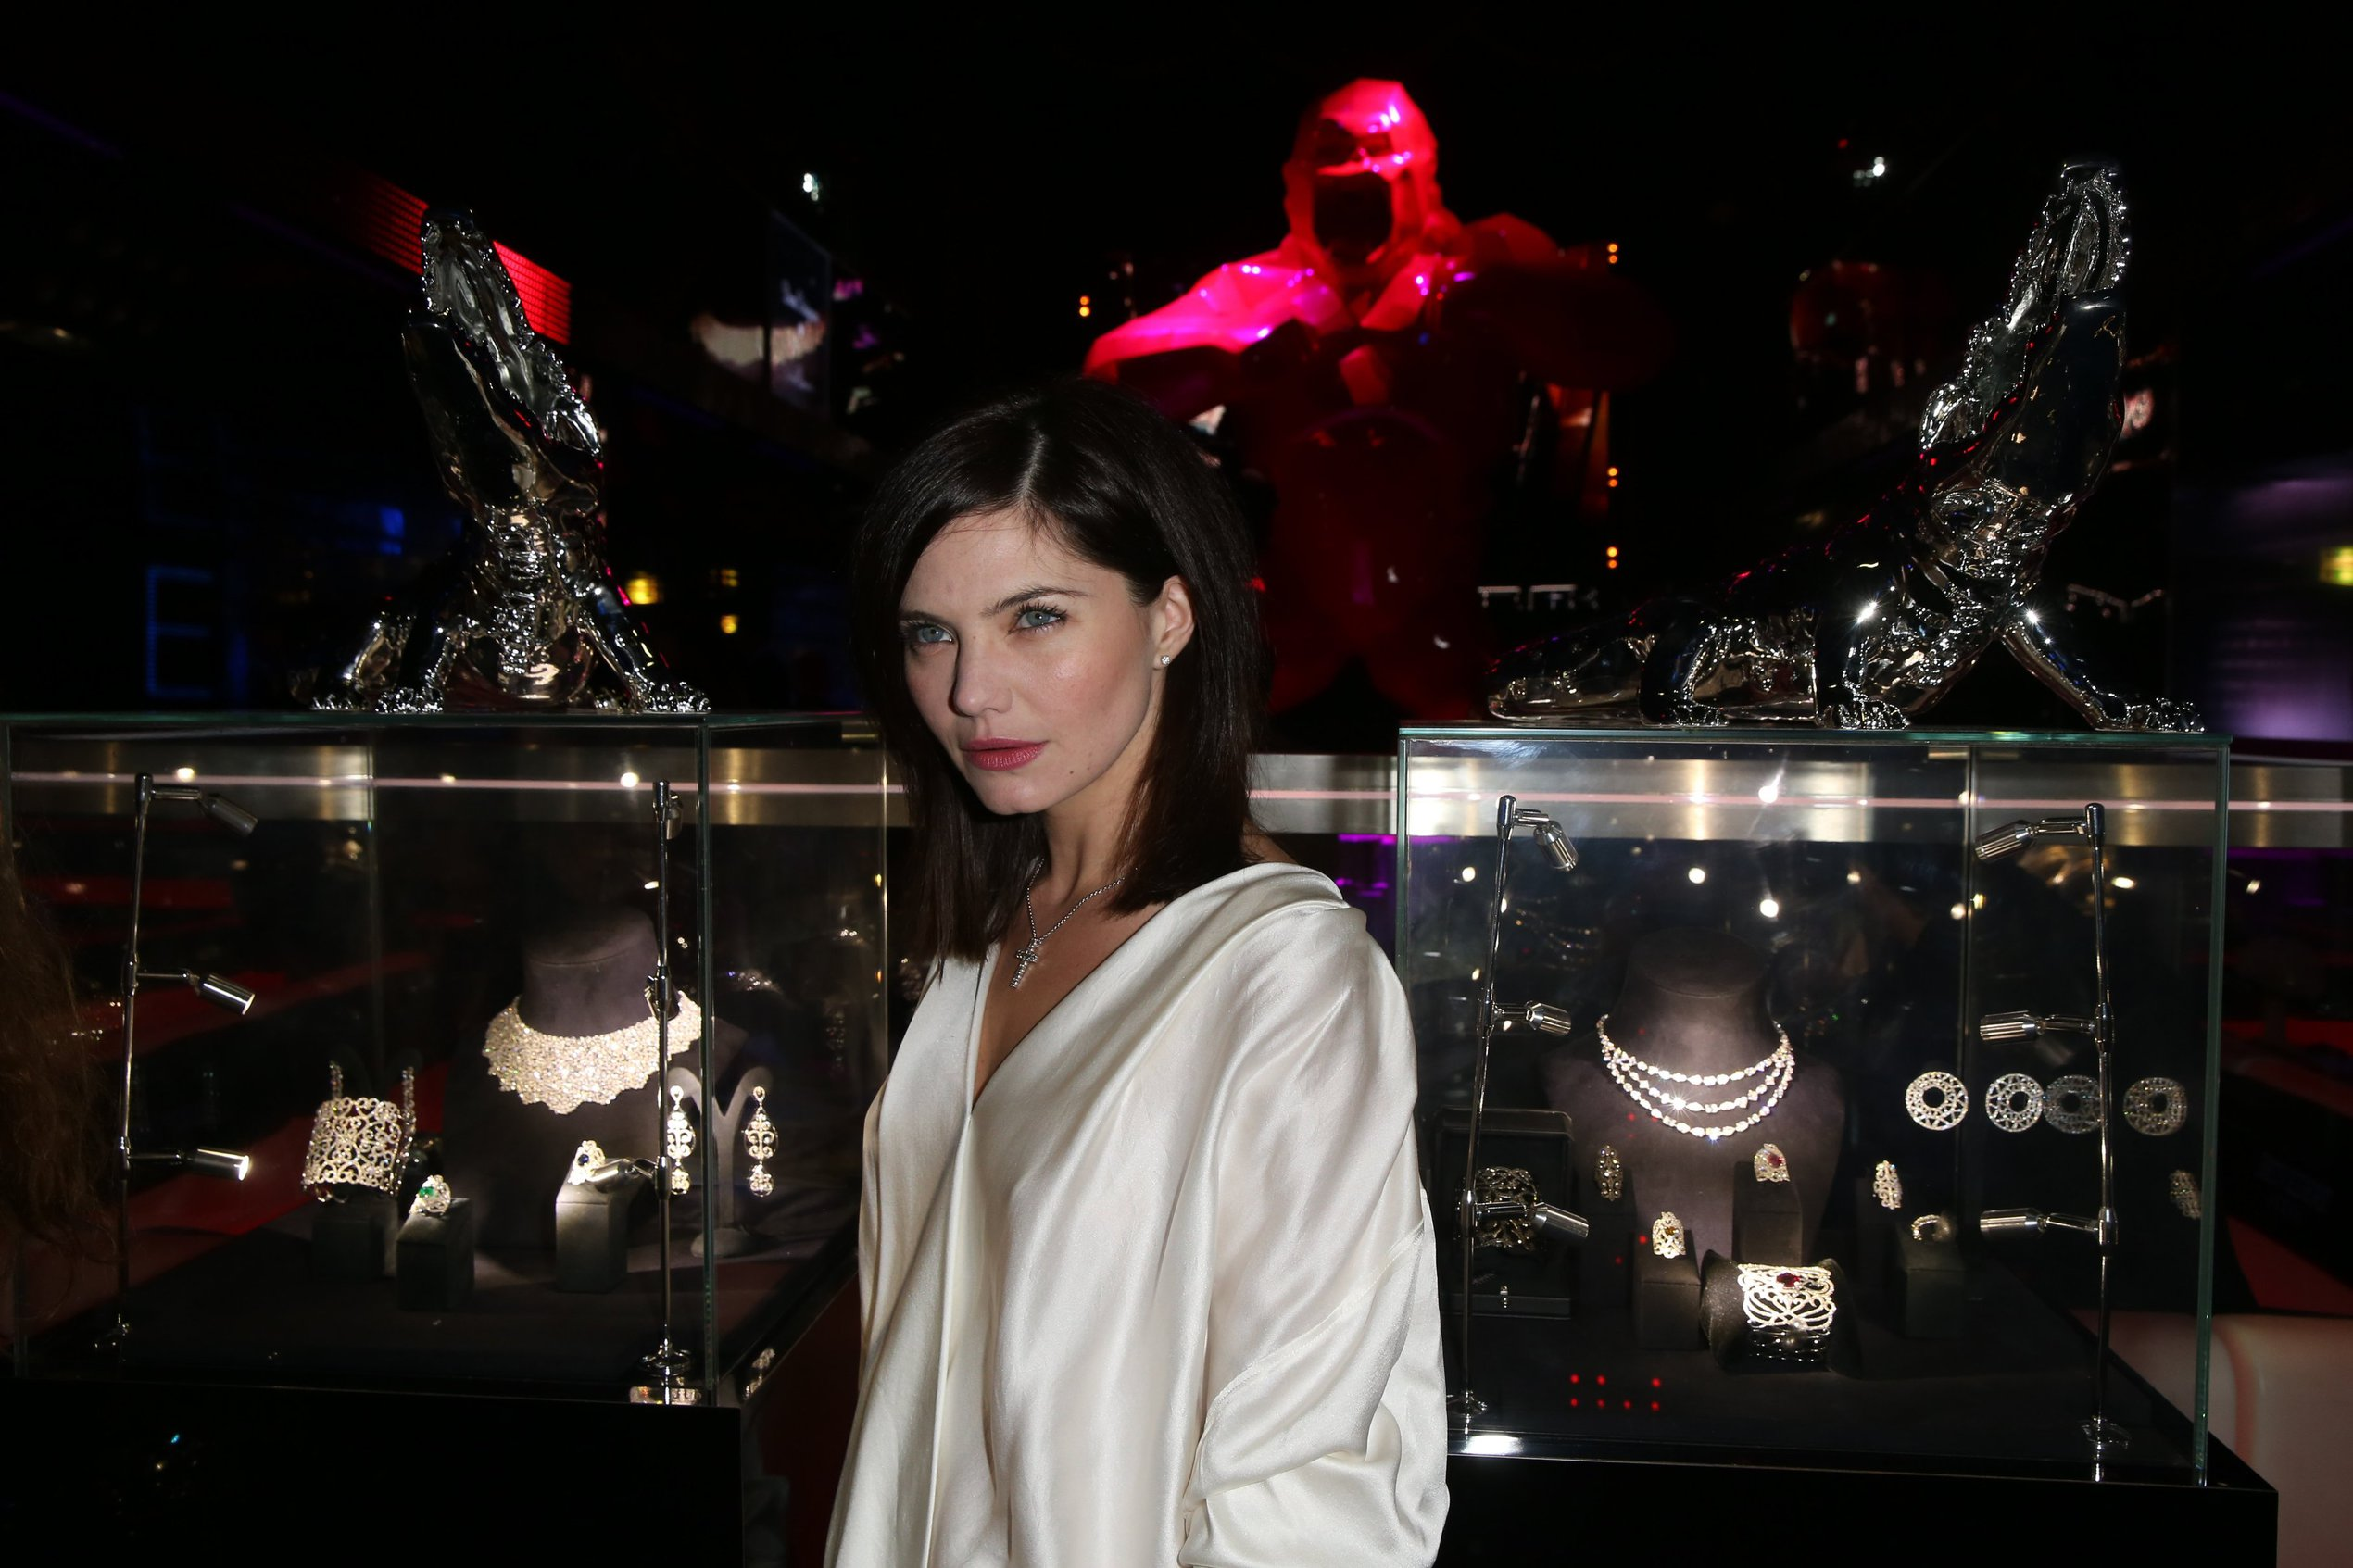 Delphine Chaneac Jeweler Edouard Nahum 'Maya' New Collection Launch in Paris (Dec 4, 2012)